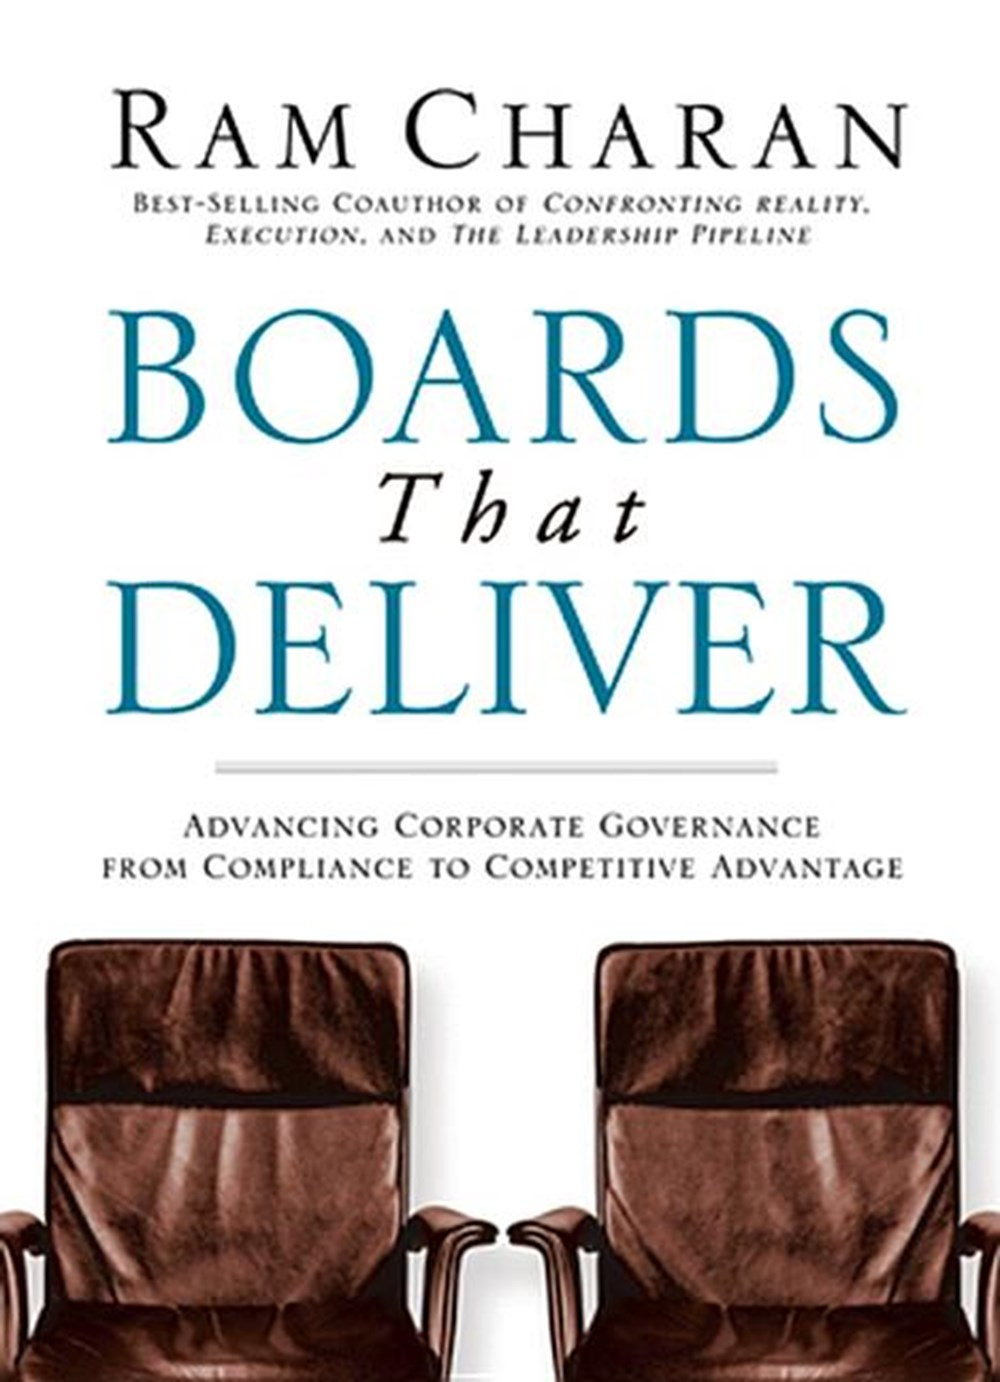 Boards That Deliver Advancing Corporate Governance from Compliance to Competitive Advantage